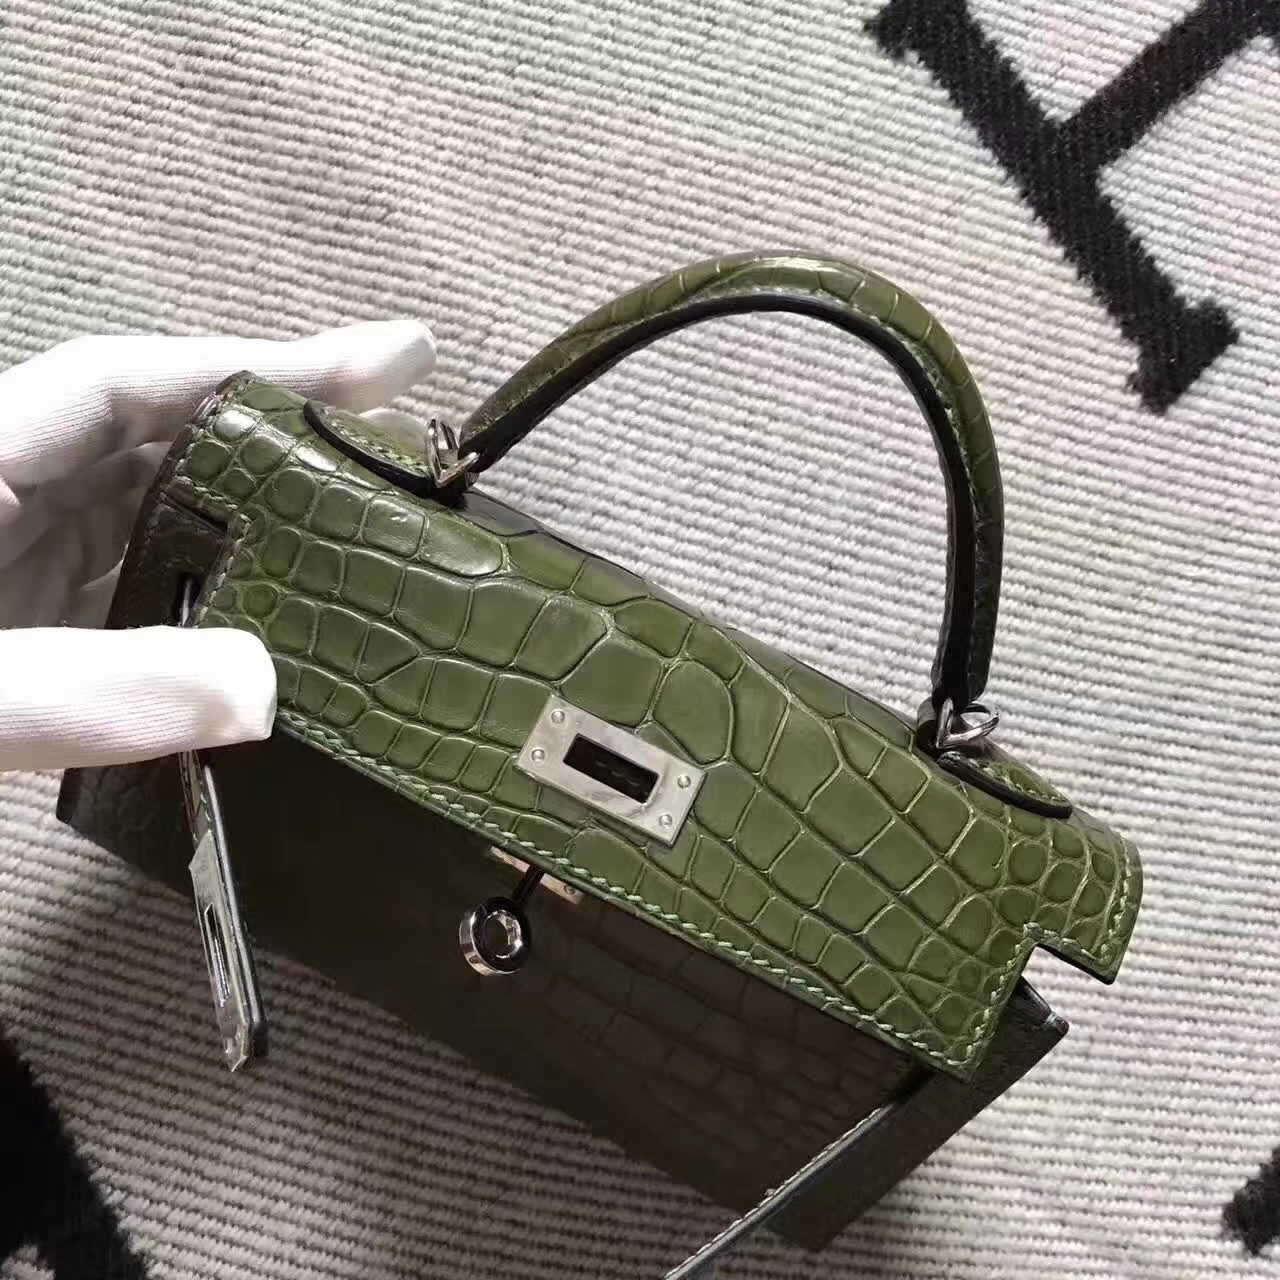 Hand Stitching Hermes Olive Green Crocodile Shiny Leather Minikelly-2 Clutch Bag